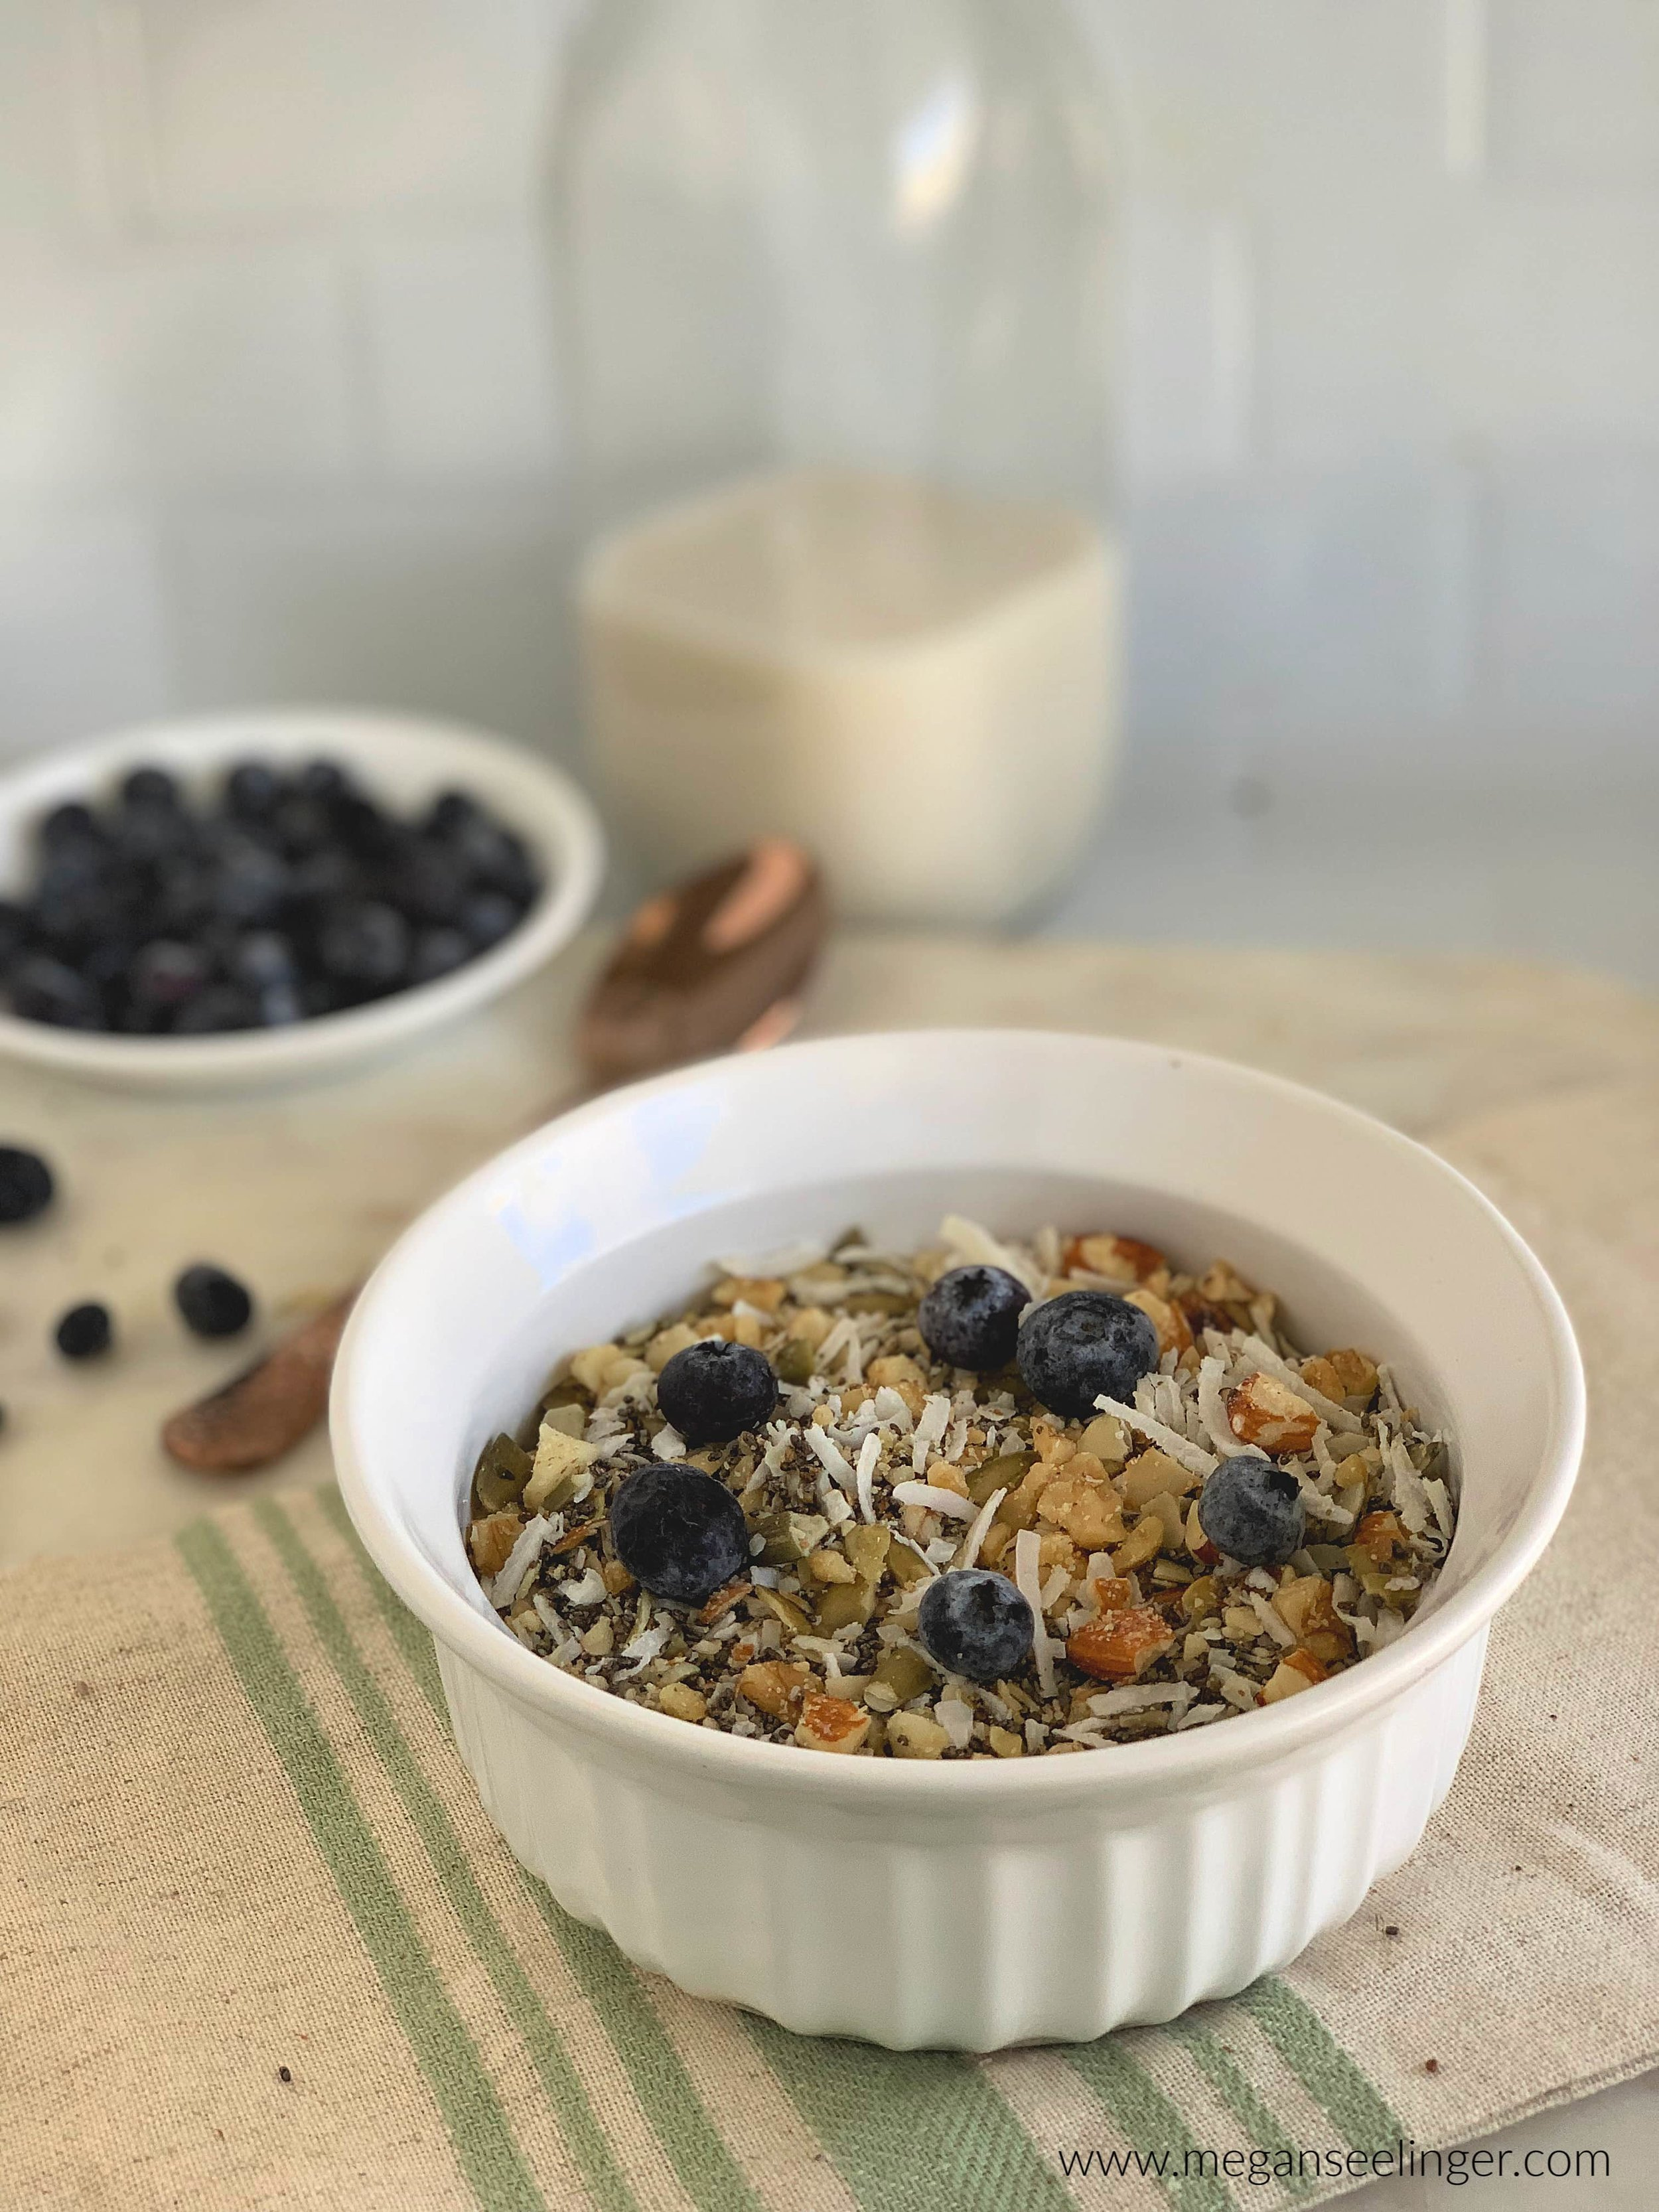 Keto Cereal Recipe- Vegan and Gluten-Free Cereal